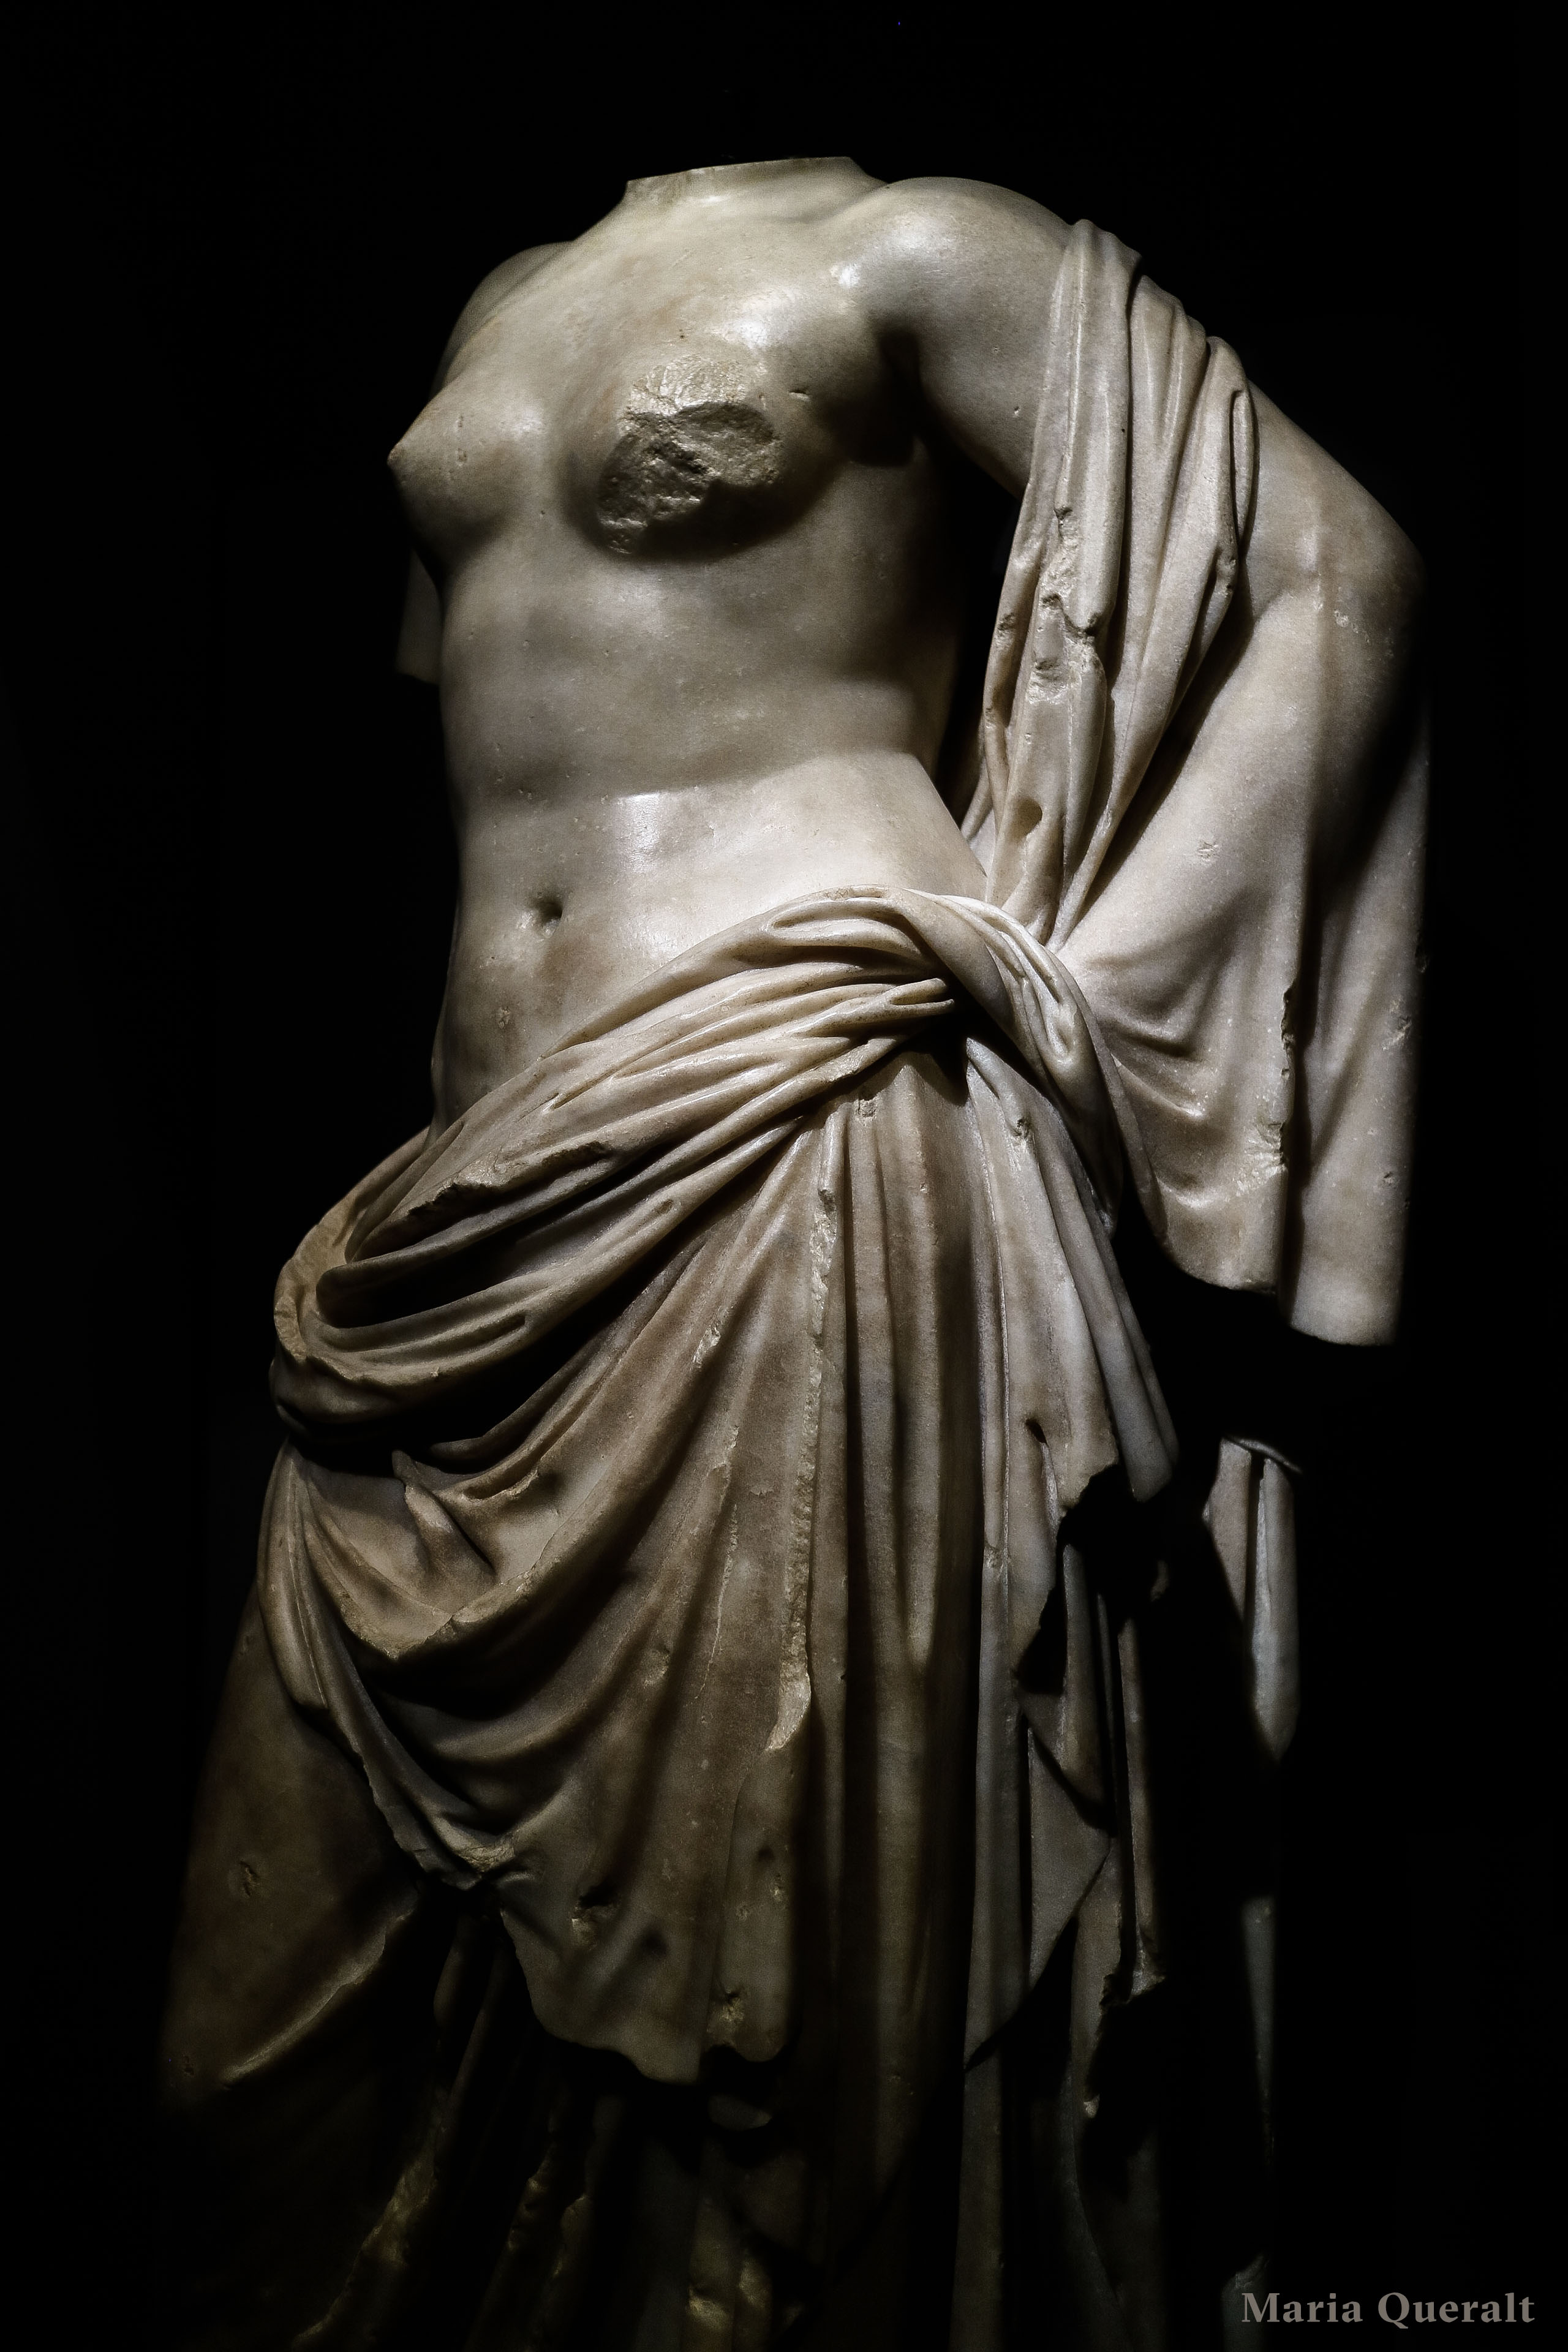 Carrara marble sculpture of Venus at the Museo Provincial de Zaragoza original from Rome. Photography and retouch by Maria Queralt